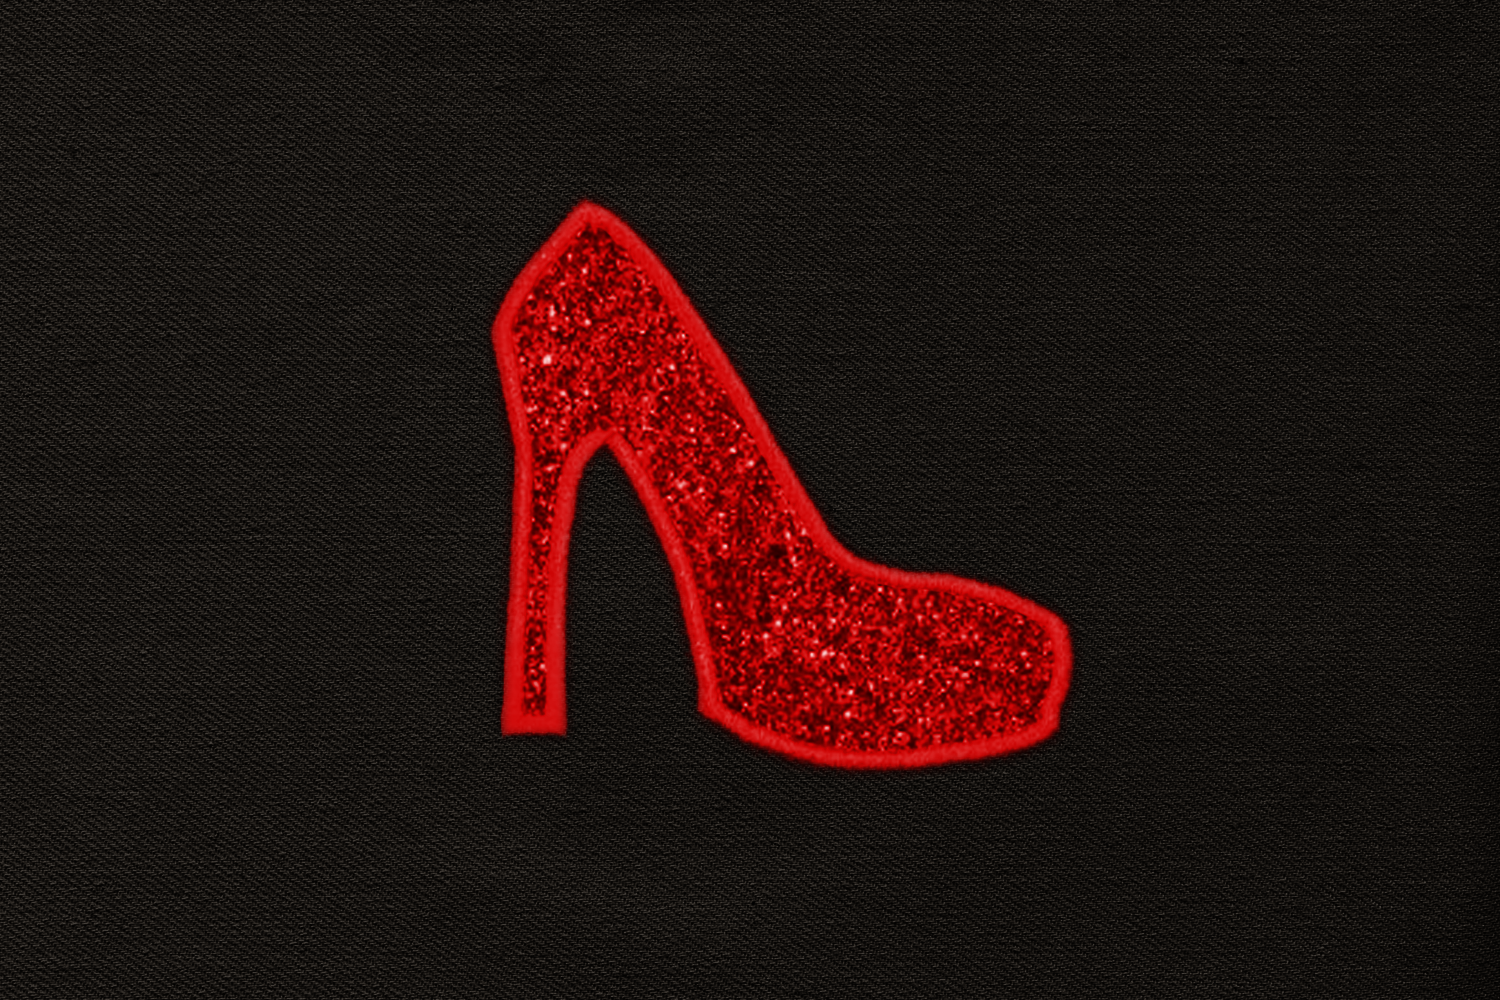 High Heel Pump Applique Embroidery Design example image 2